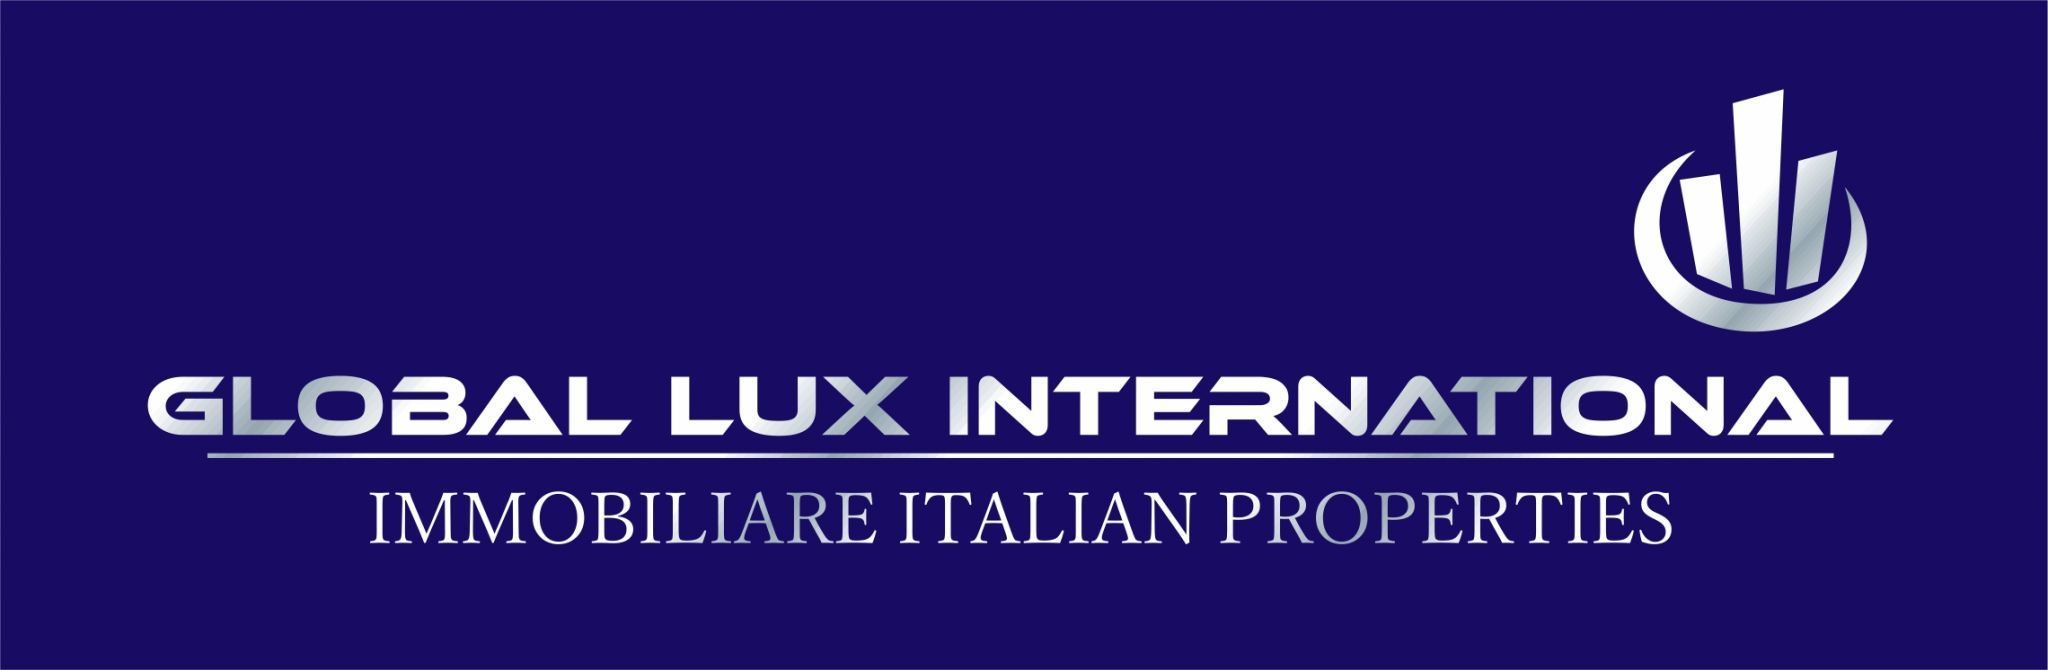 Global Lux International Immobiliare Italian Properties